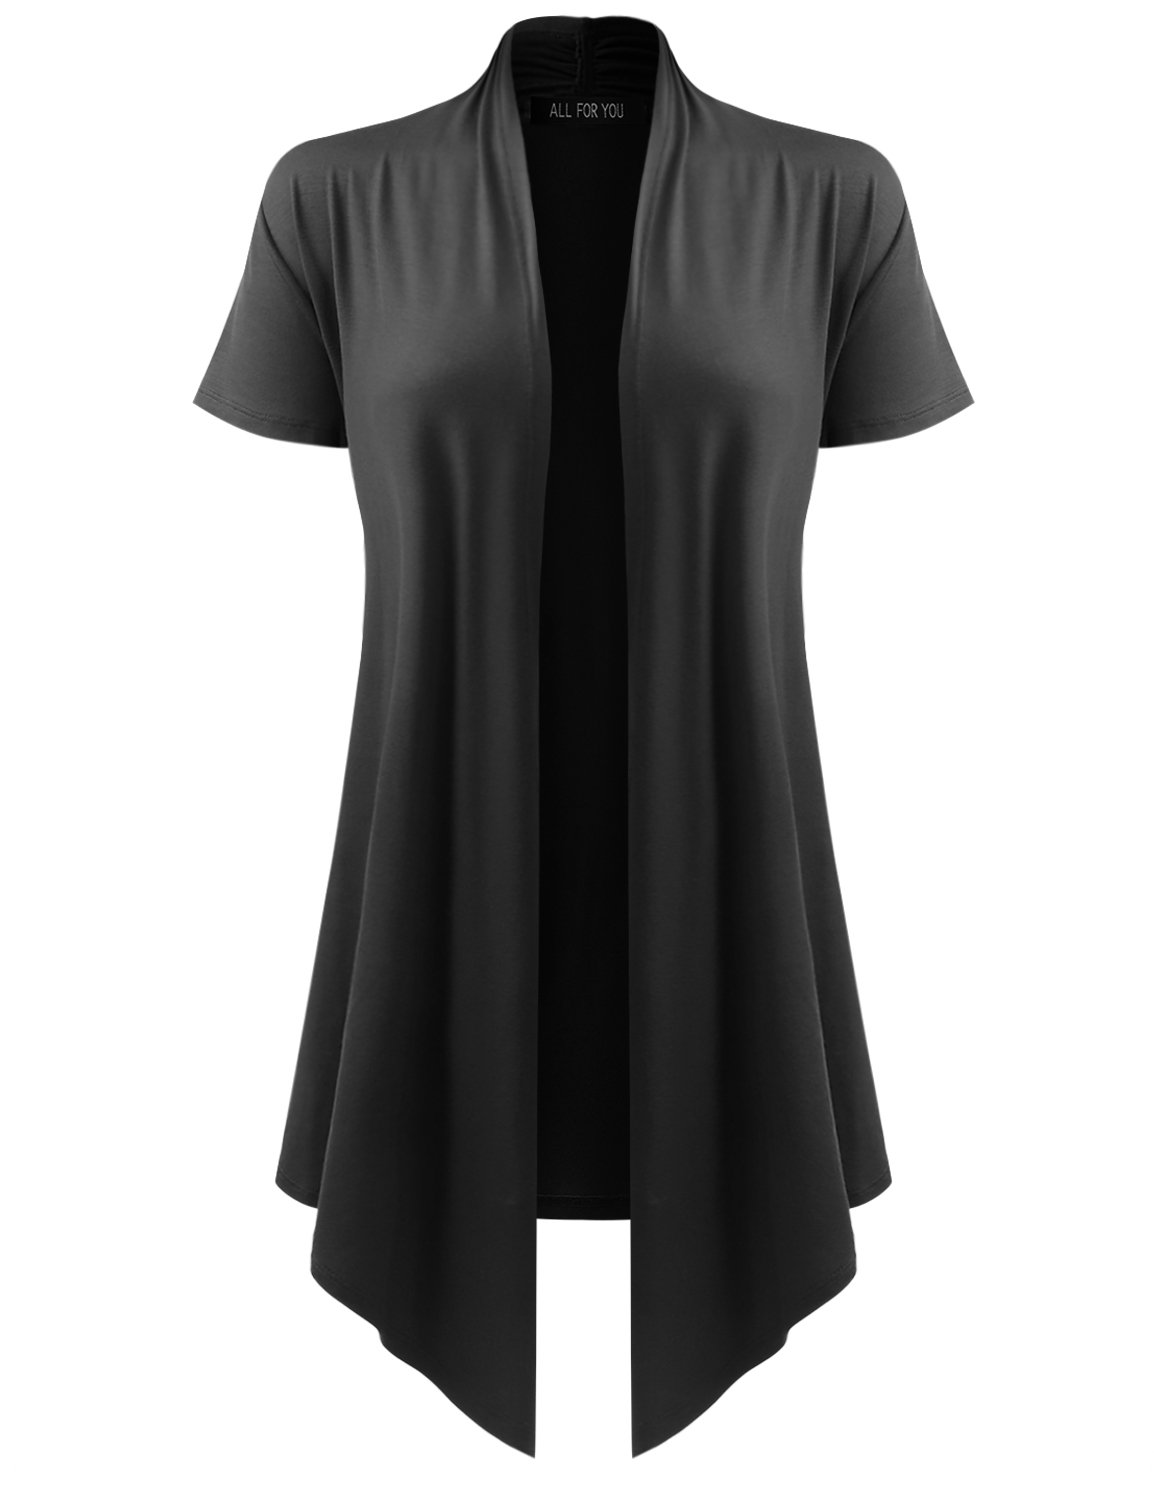 A.F.Y All For You Women's Soft Drape Cardigan Short Sleeve Black XX-Large